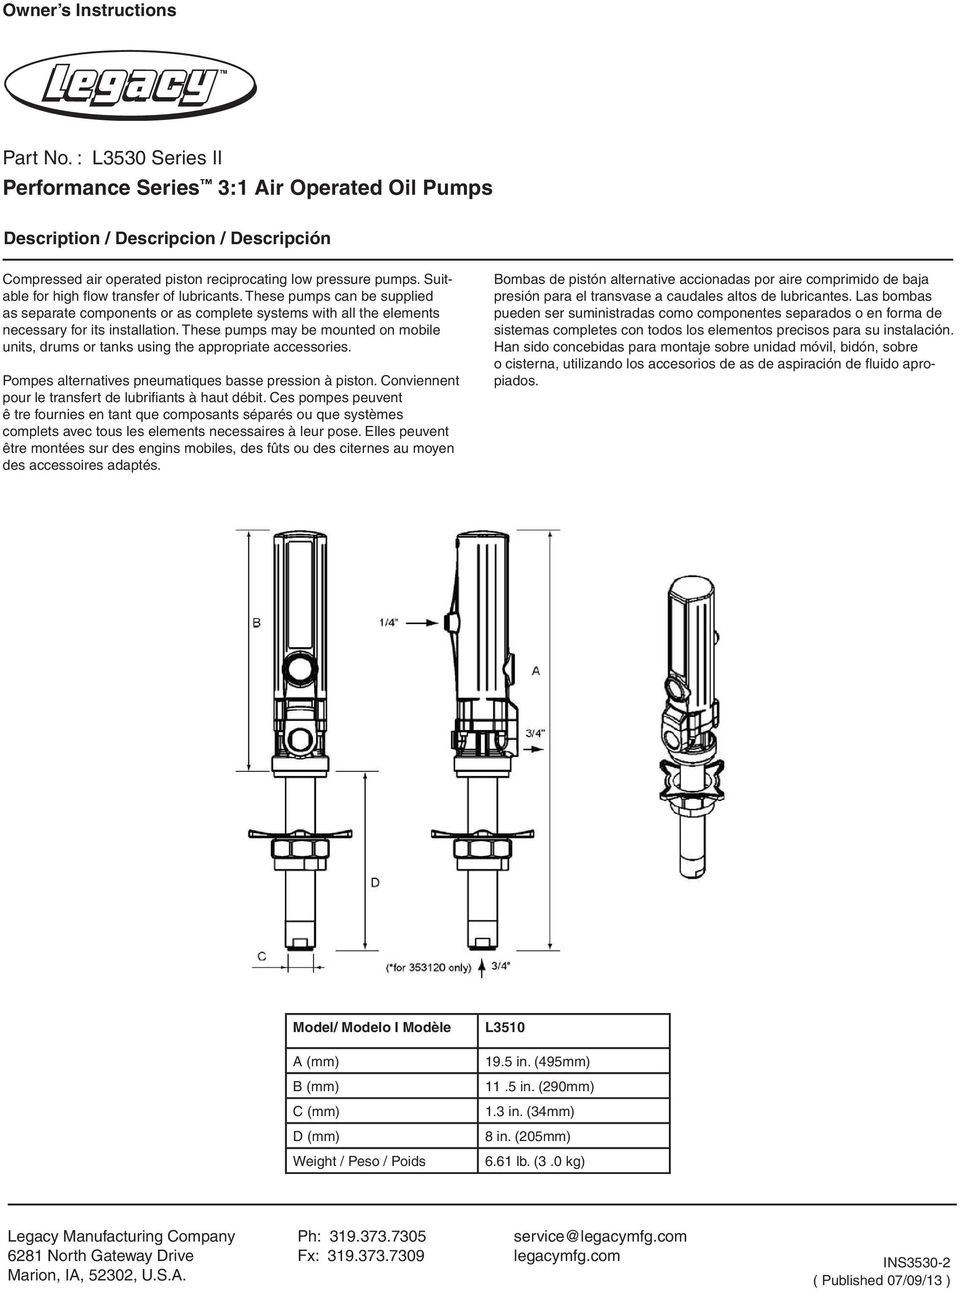 These pumps may be mounted on mobile units, drums or tanks using the appropriate accessories. Pompes alternatives pneumatiques basse pression à piston.